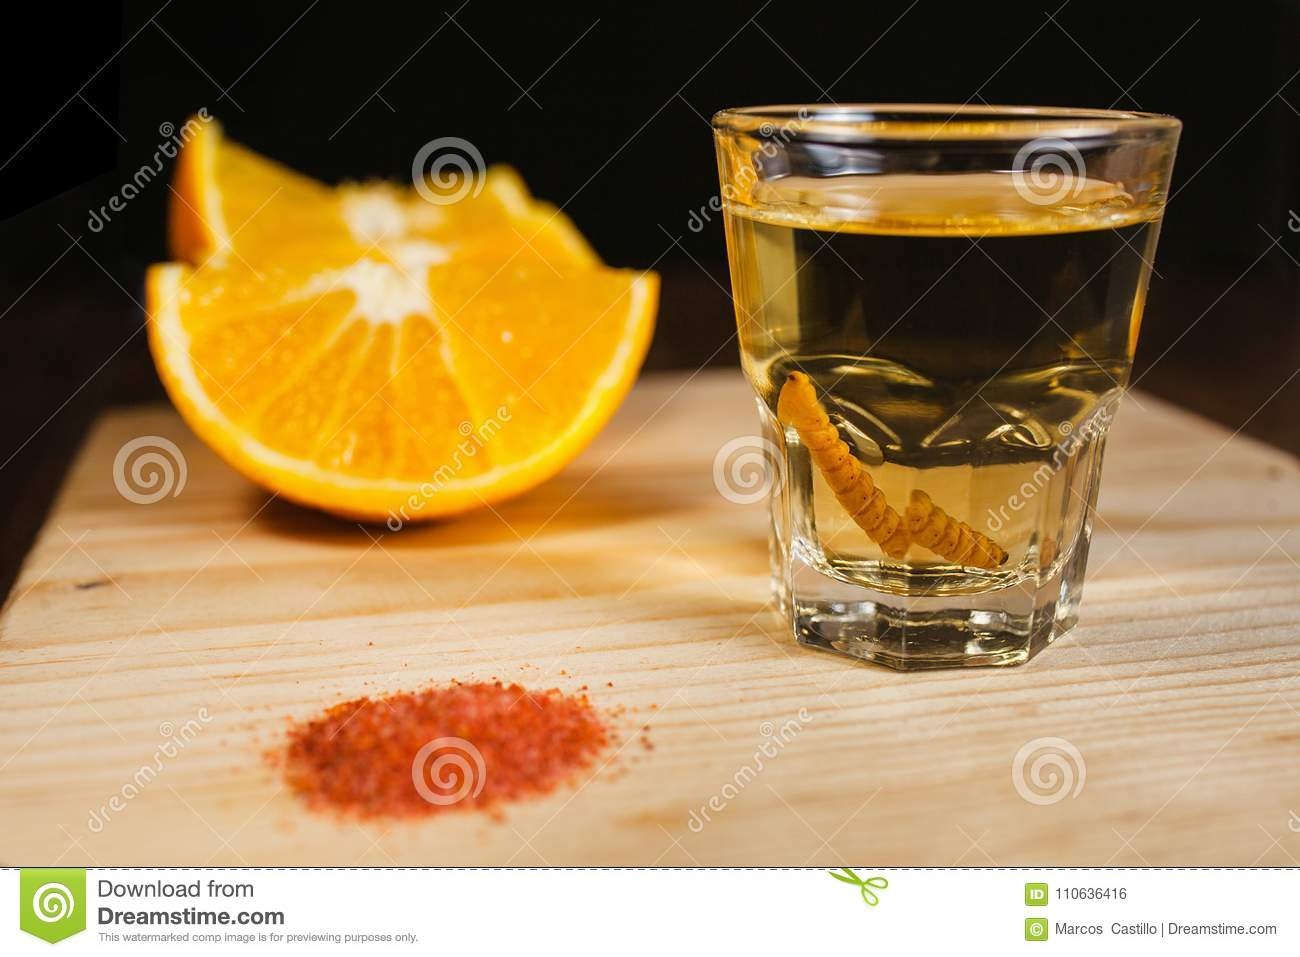 Mezcal shot mexican drink with orange and worm salt in oaxaca mexico